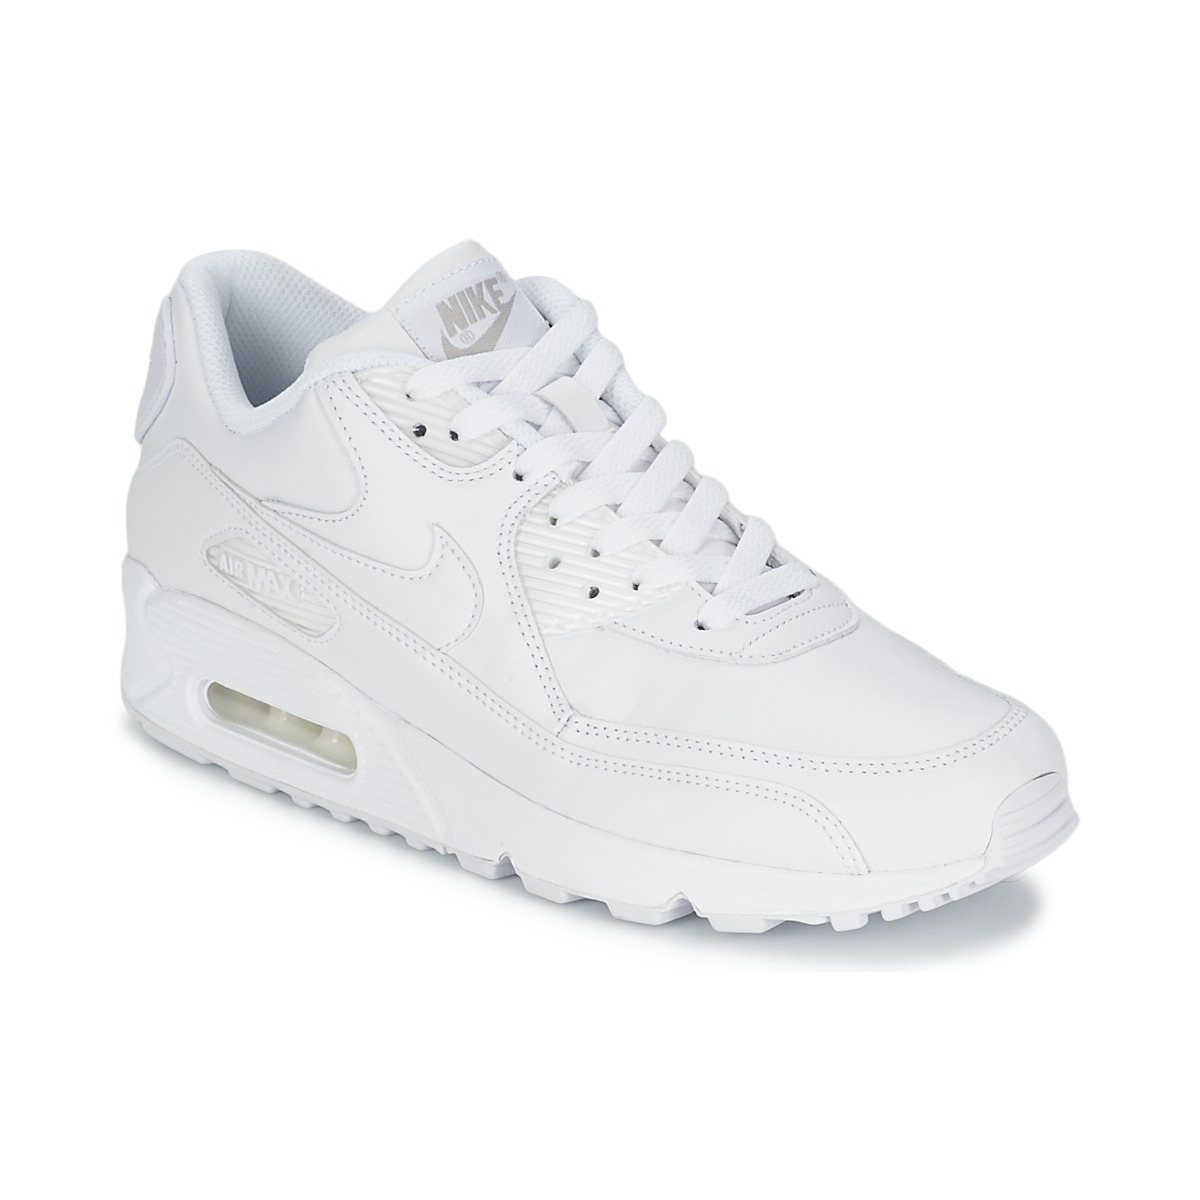 low priced f9b10 44808 Nike Air. 145.00. Shoes Men Low top trainers Nike AIR MAX 90 ...